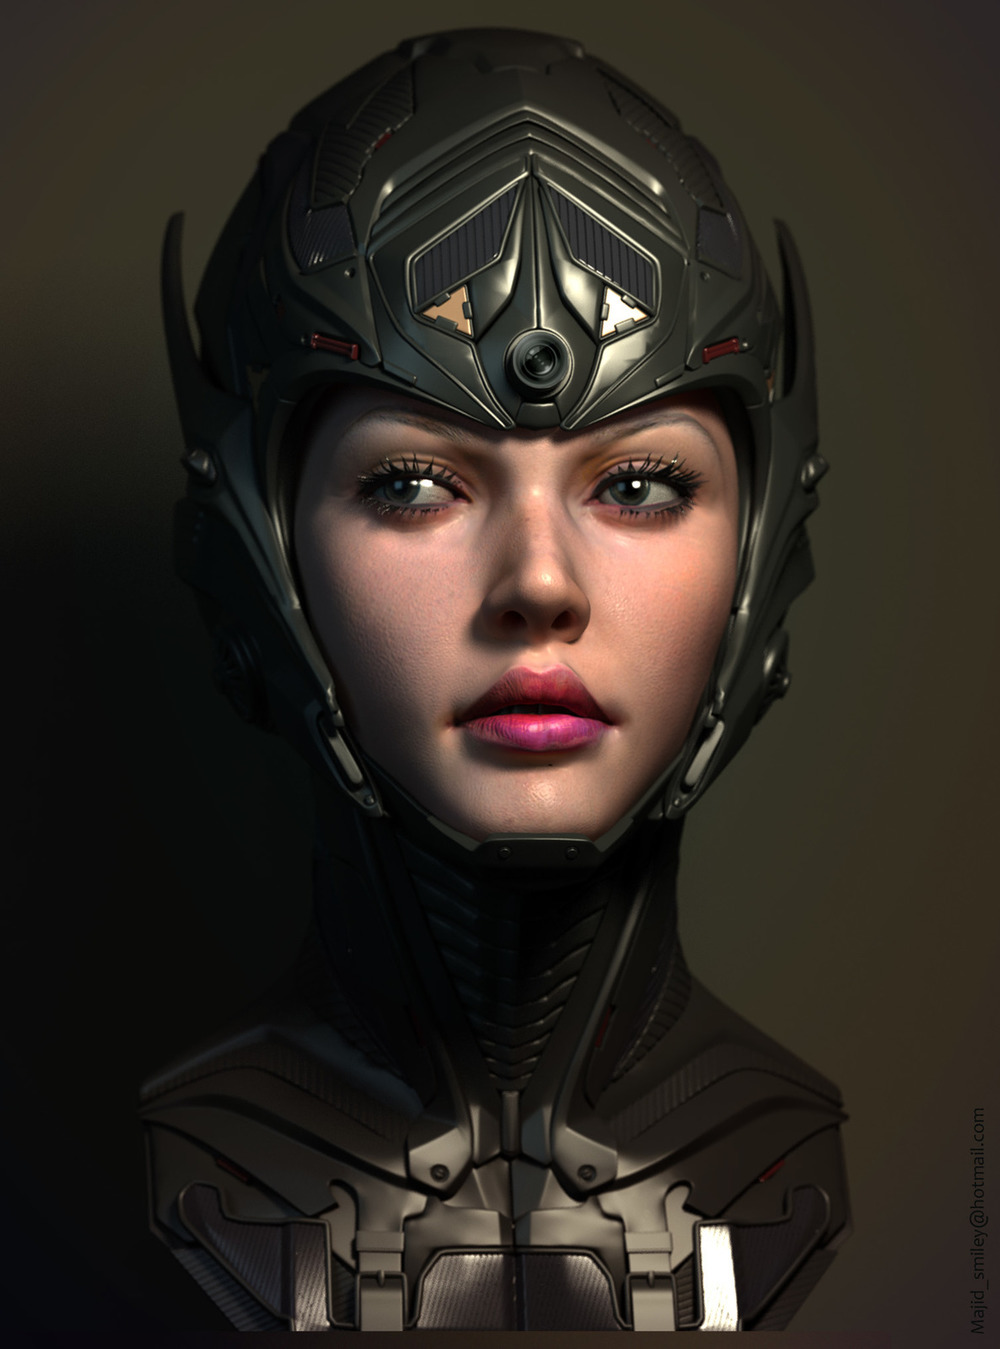 scifi girl-test render in Maya-VRay